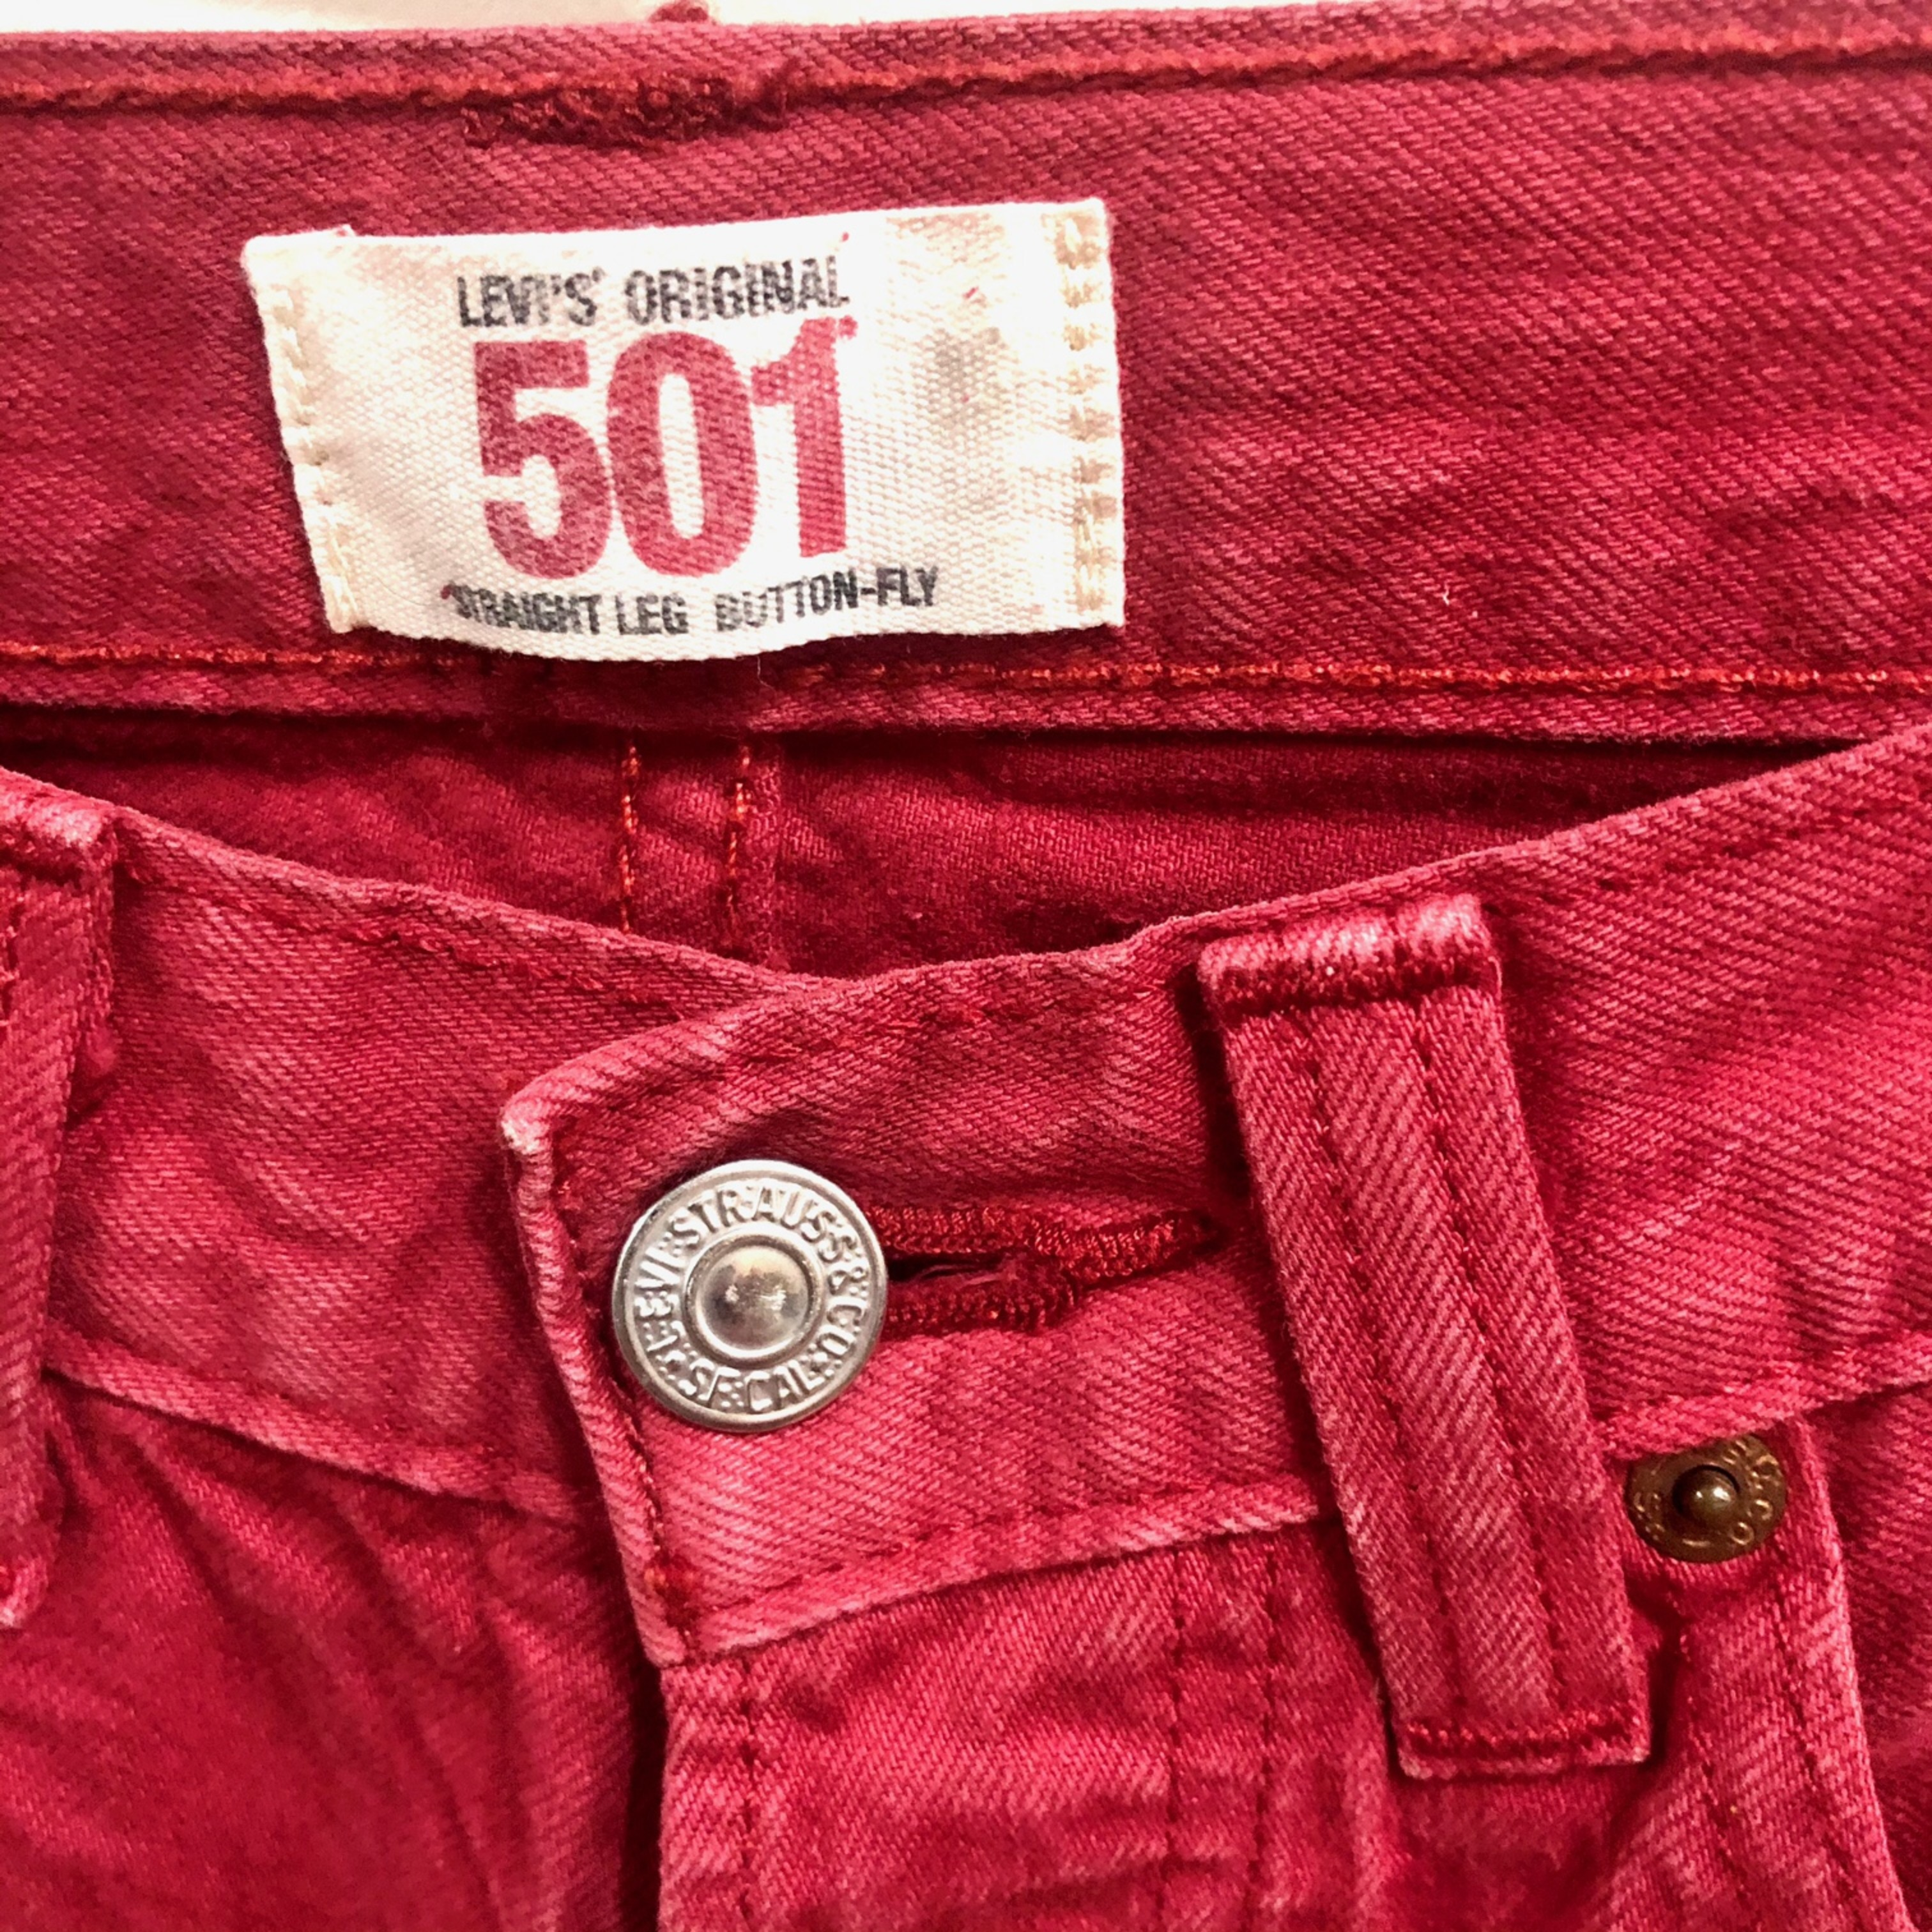 Red Levi's 501 Jeans